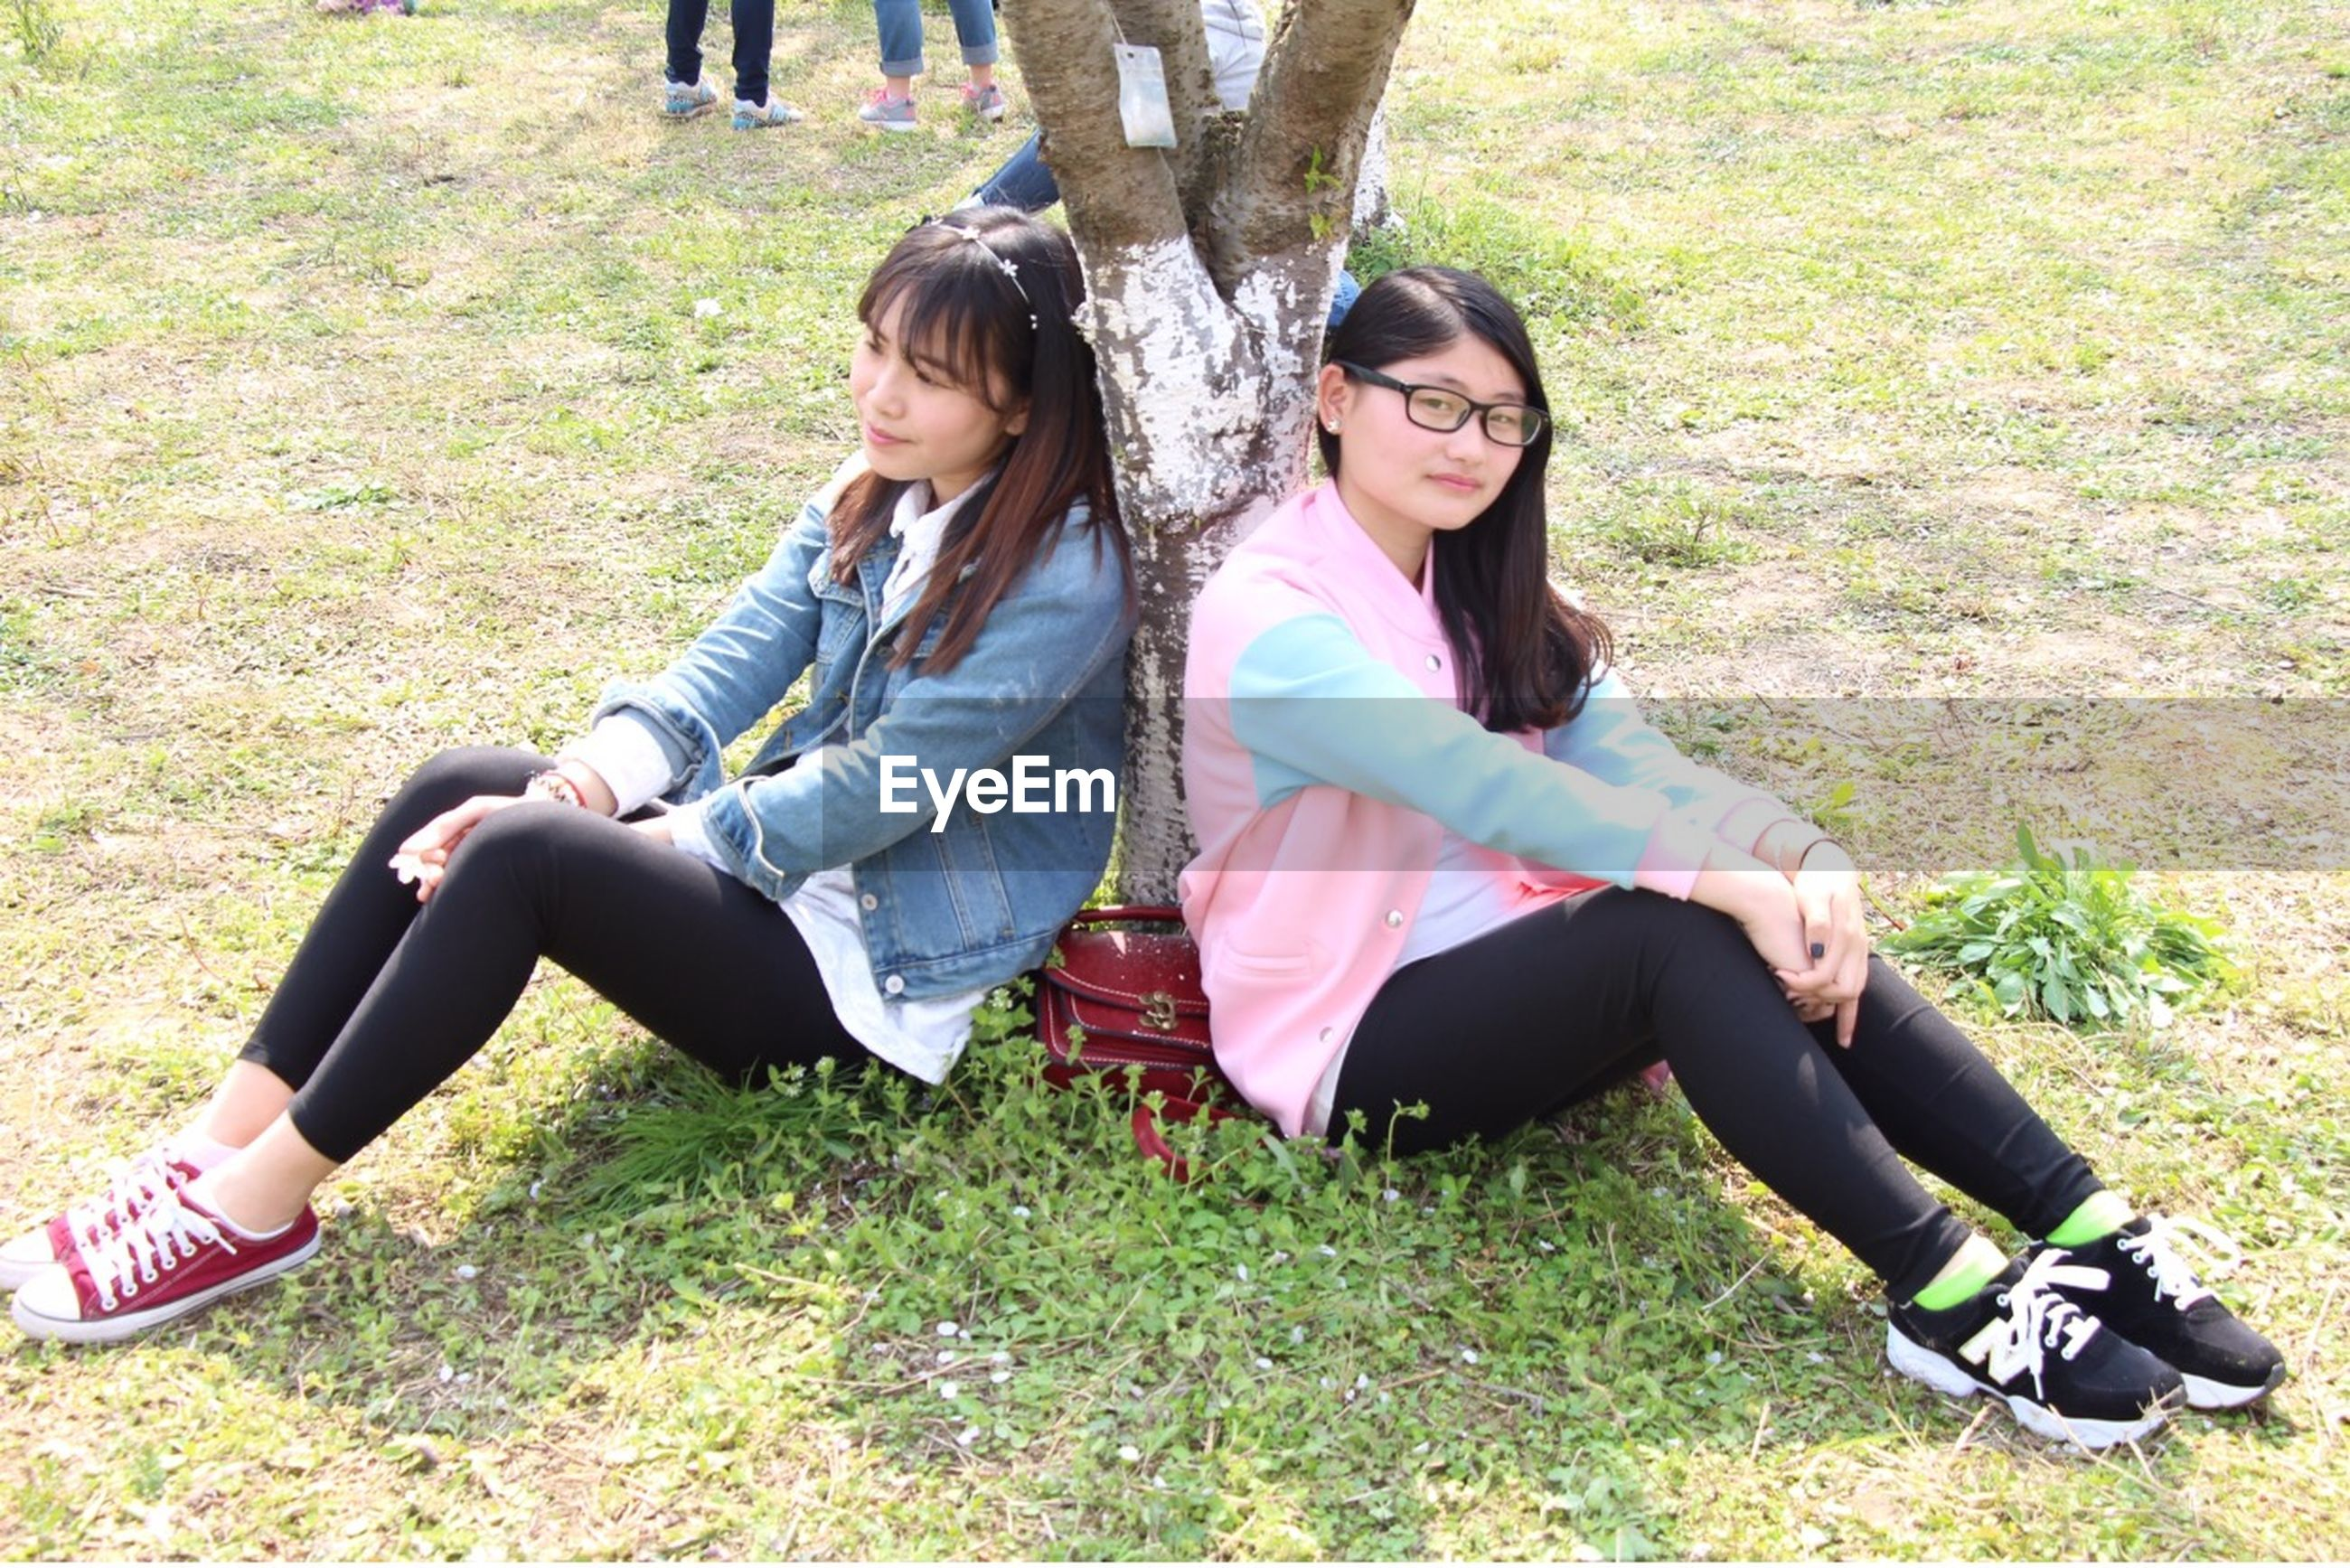 grass, lifestyles, leisure activity, person, casual clothing, young adult, sitting, full length, relaxation, young women, togetherness, park - man made space, smiling, happiness, field, lying down, childhood